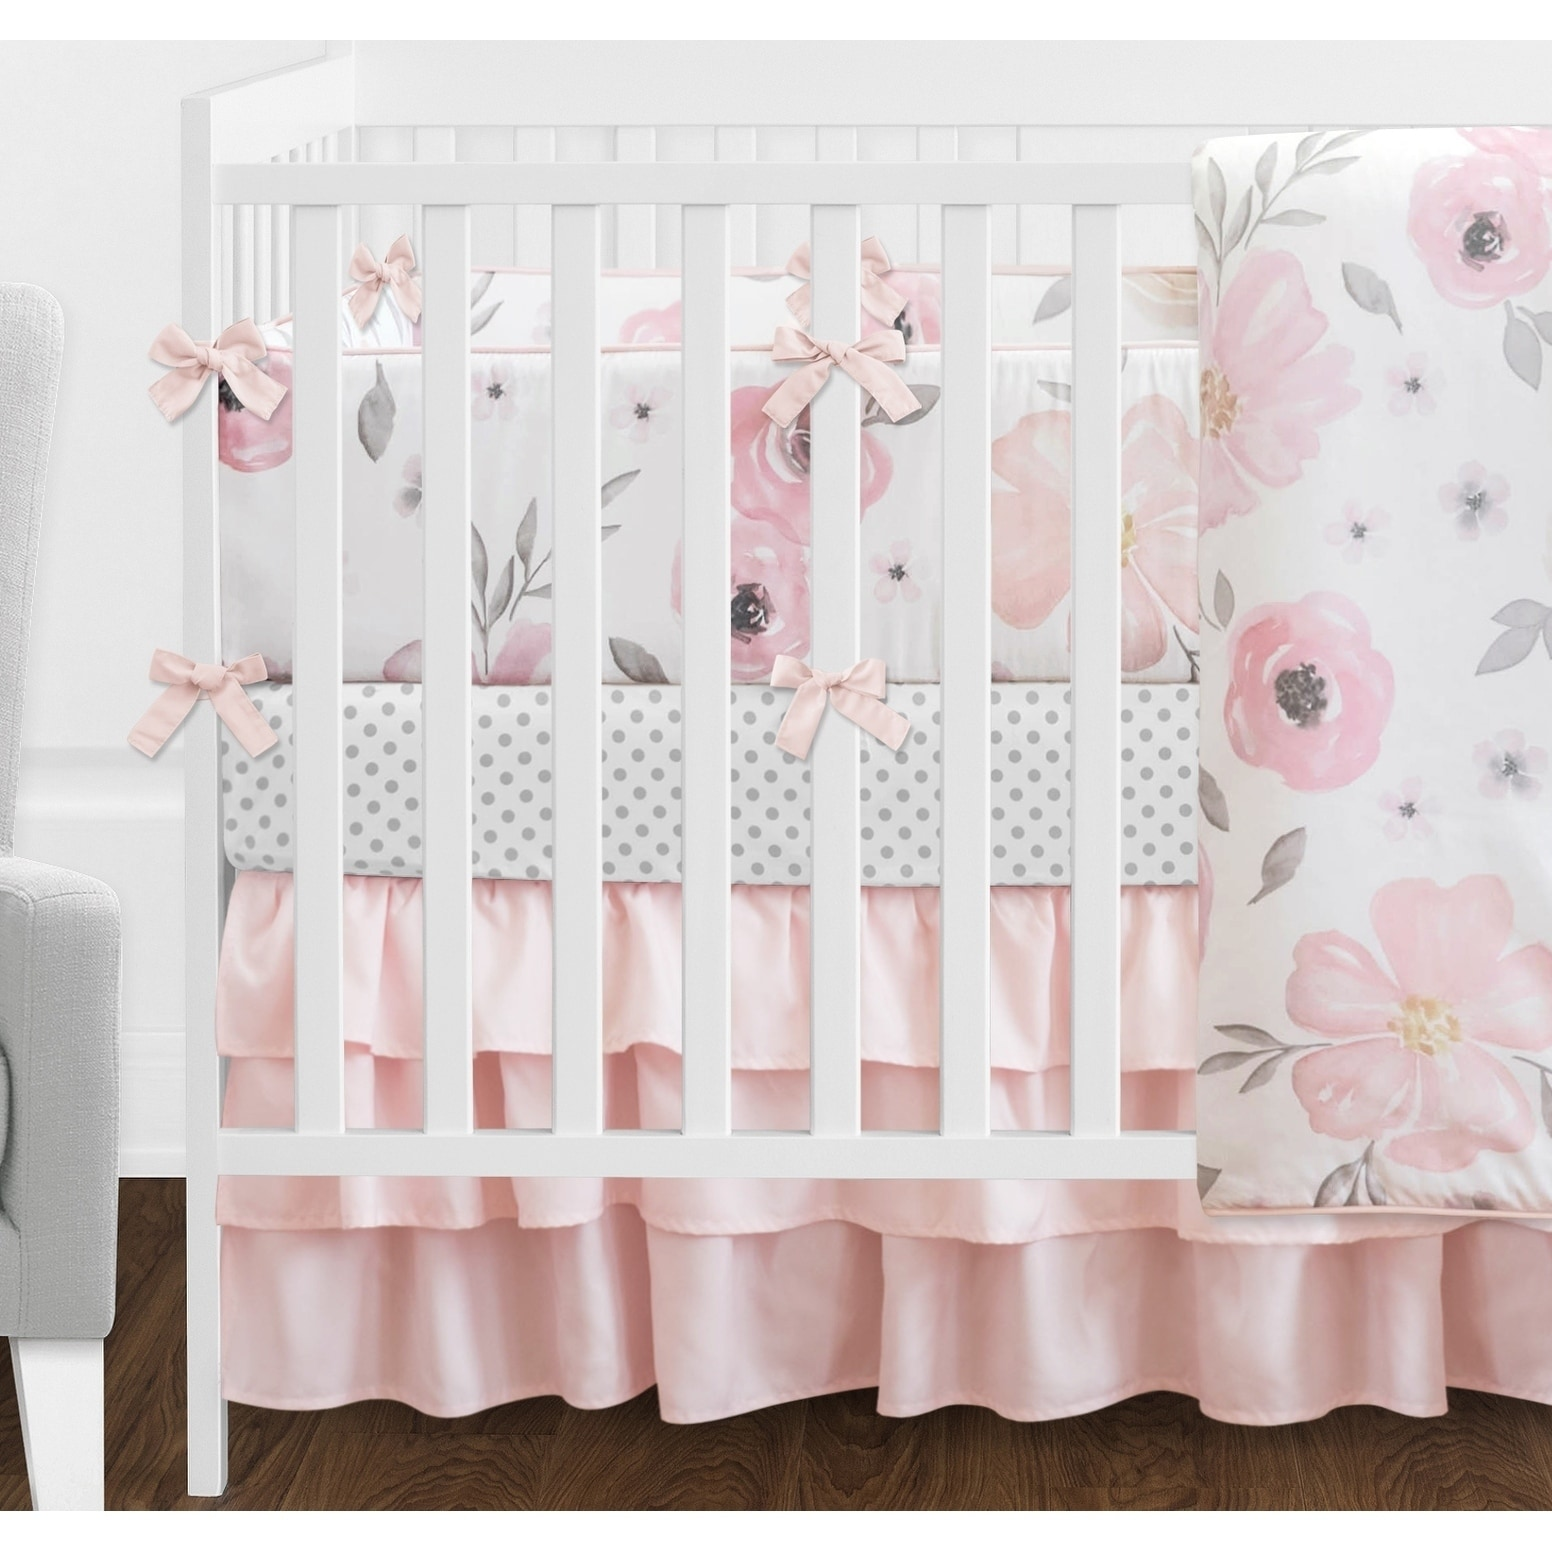 5628ed3ae Shop Sweet Jojo Designs Blush Pink, Grey and White Shabby Chic Watercolor  Floral Collection Baby Girl 9piece Crib Bedding Set - Free Shipping Today  ...